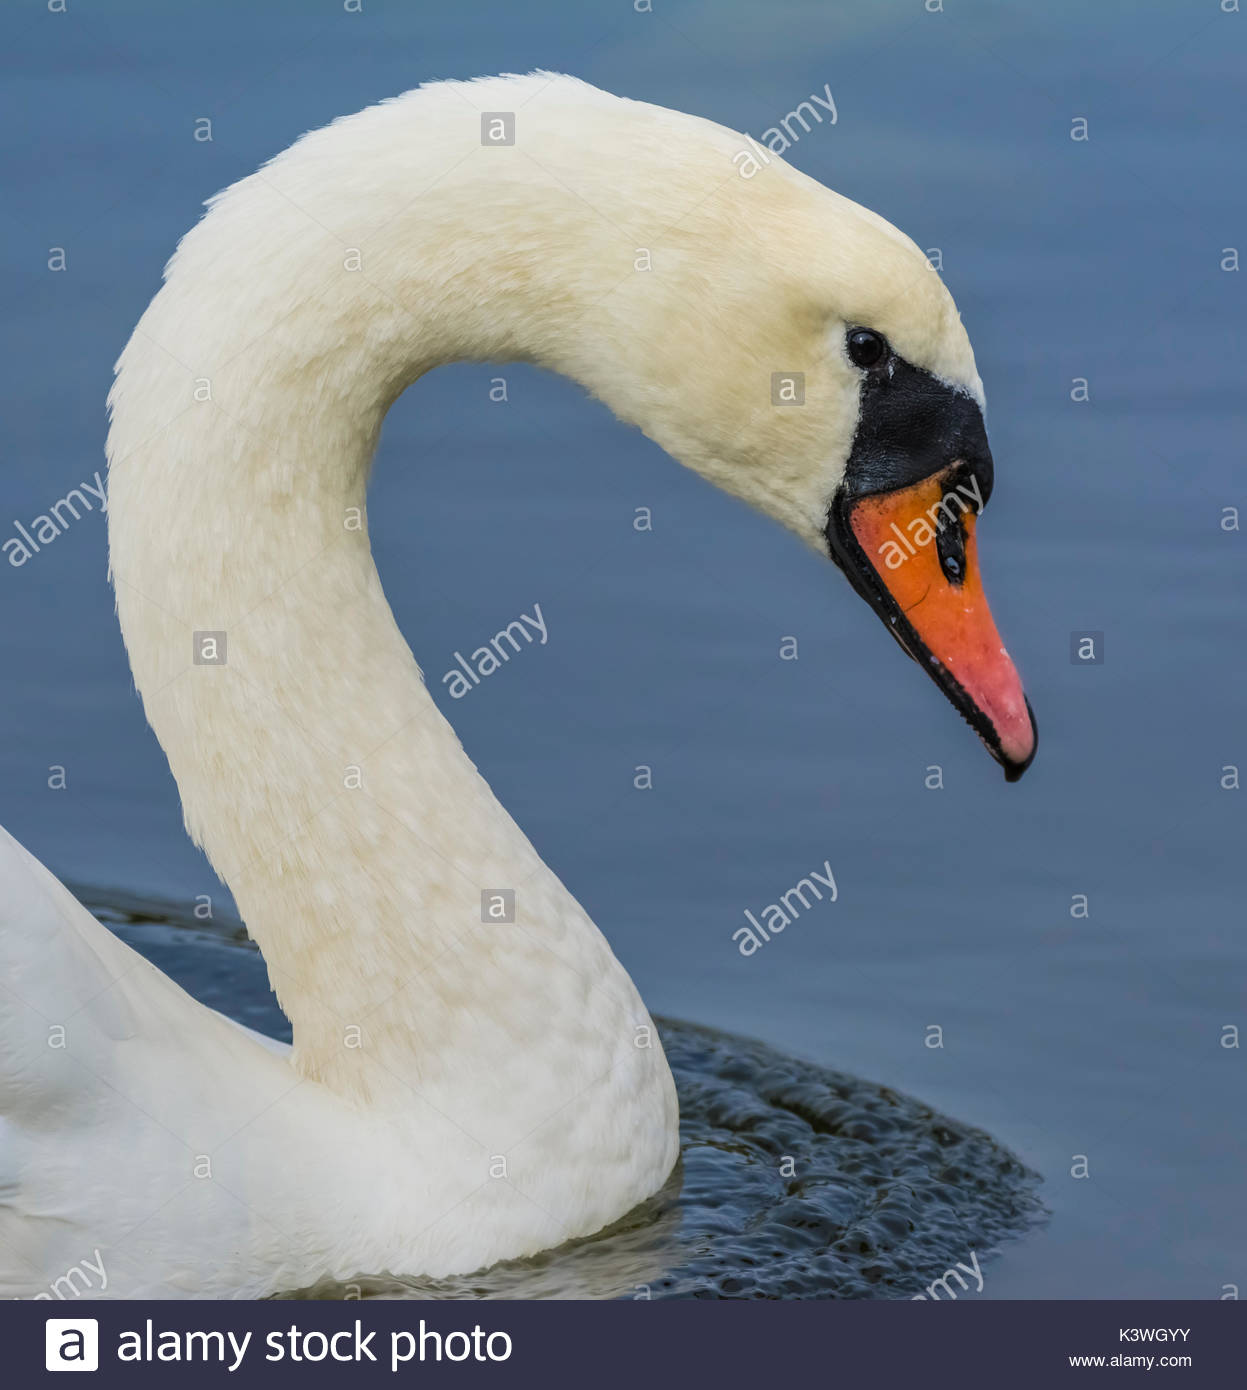 White Mute Swan (Cygnus olor) head and neck from the side view, swimming in calm blue water in the UK, in portrait. - Stock Image